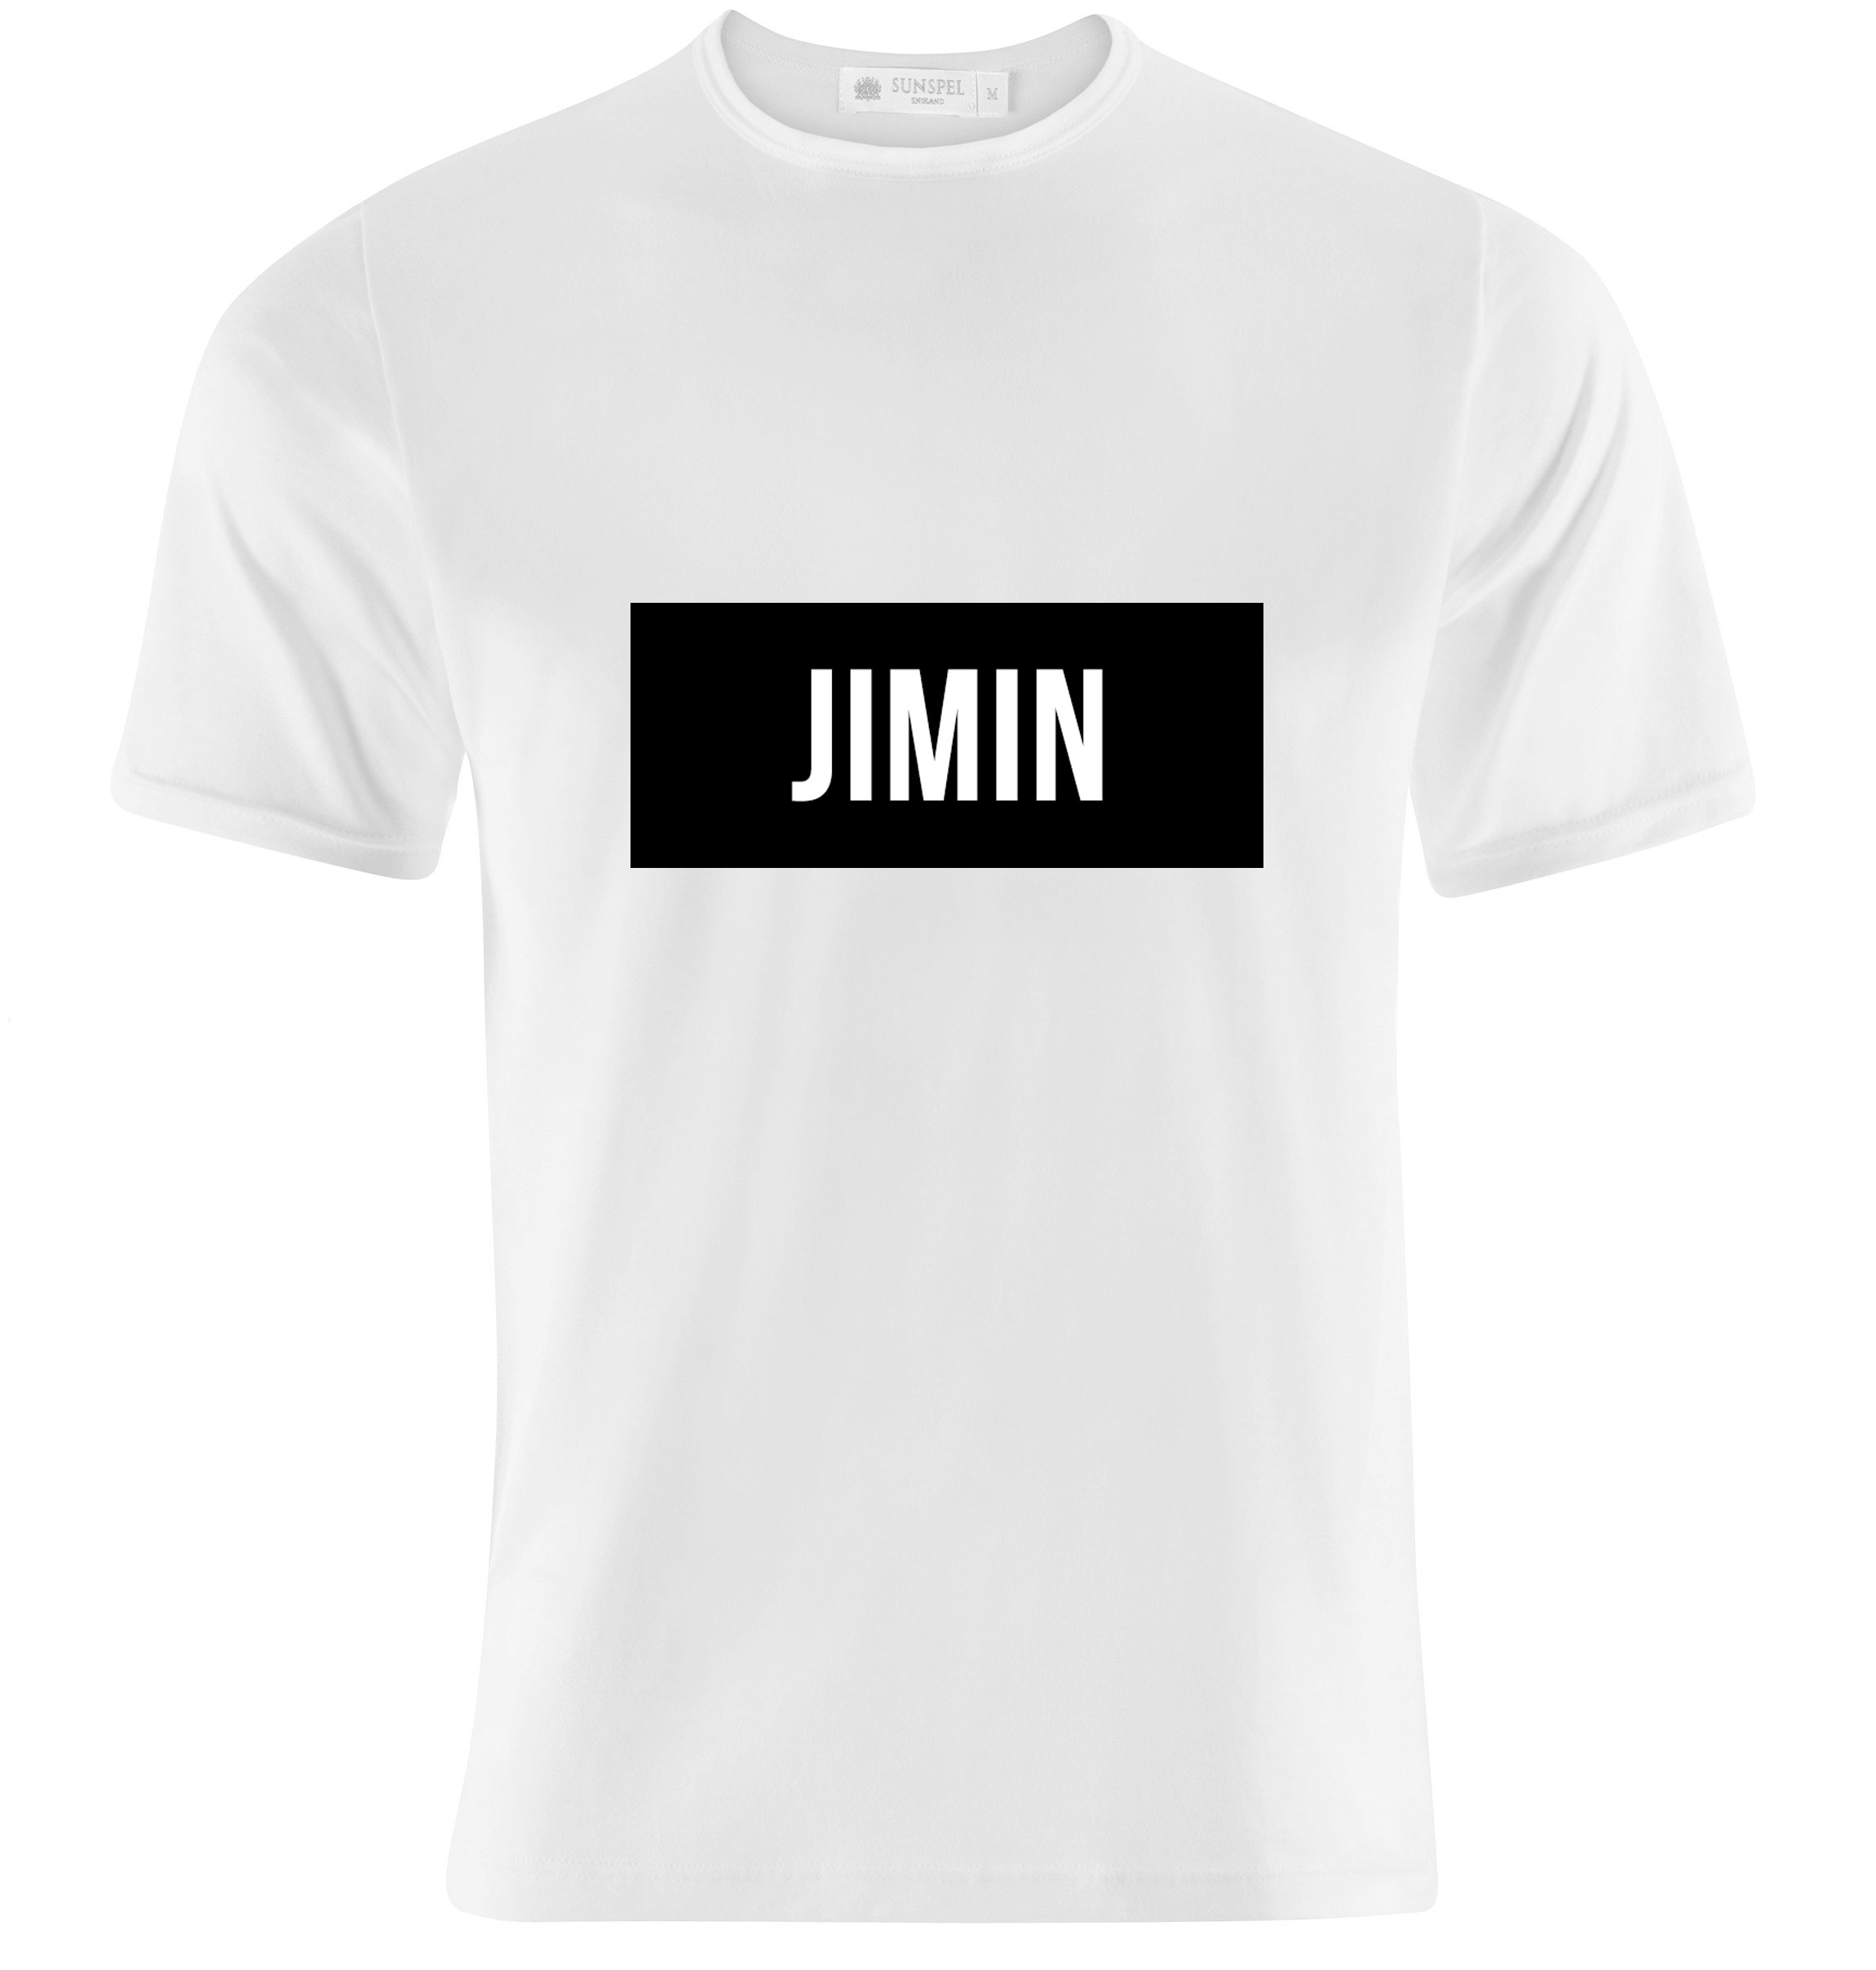 Bts jimin name tag bobaculture online store powered for Custom t shirts mississauga